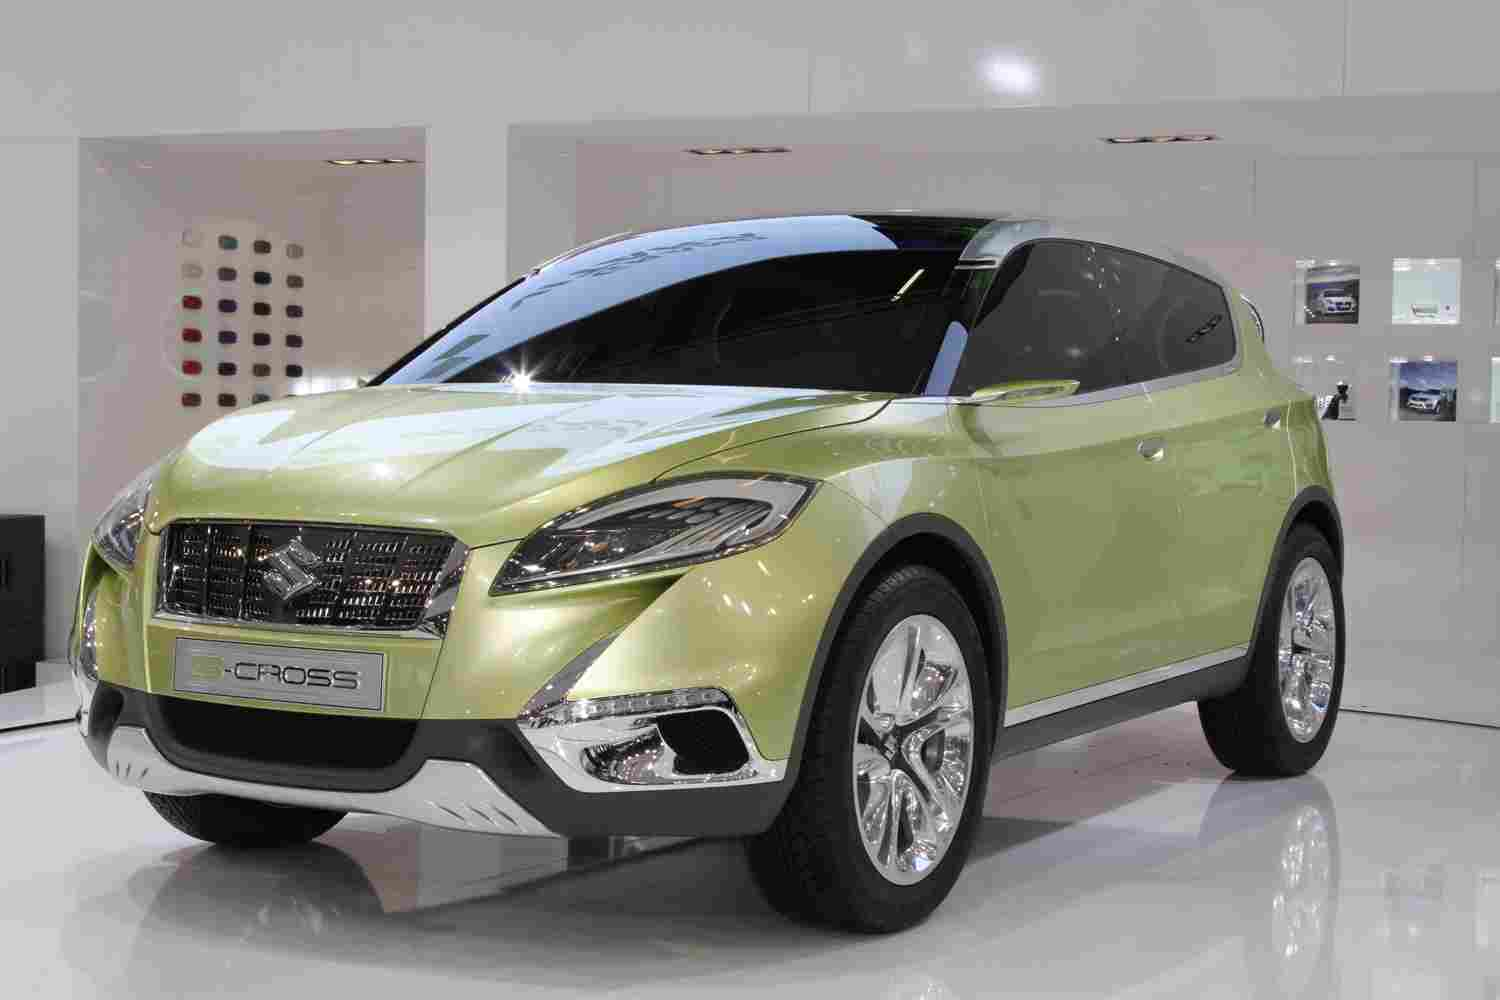 2019 Suzuki S Cross Concept photo - 2